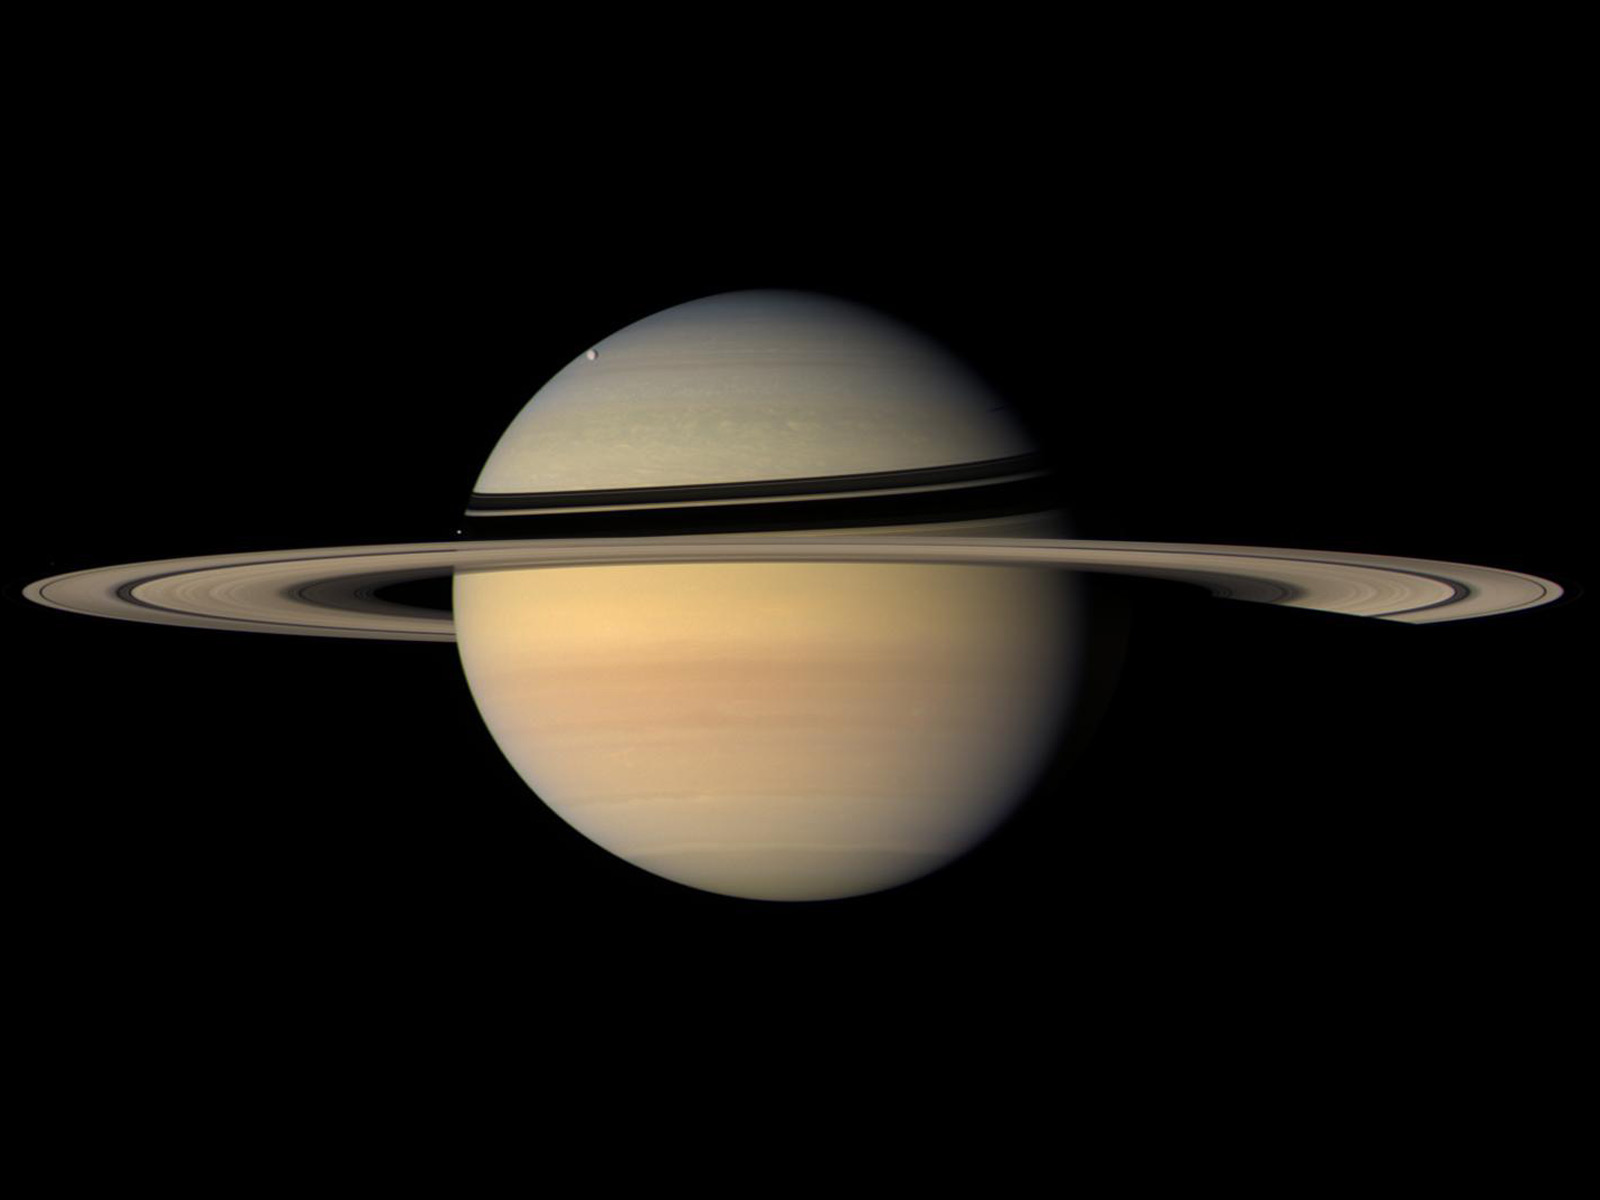 gallery of the planet saturn - photo #17